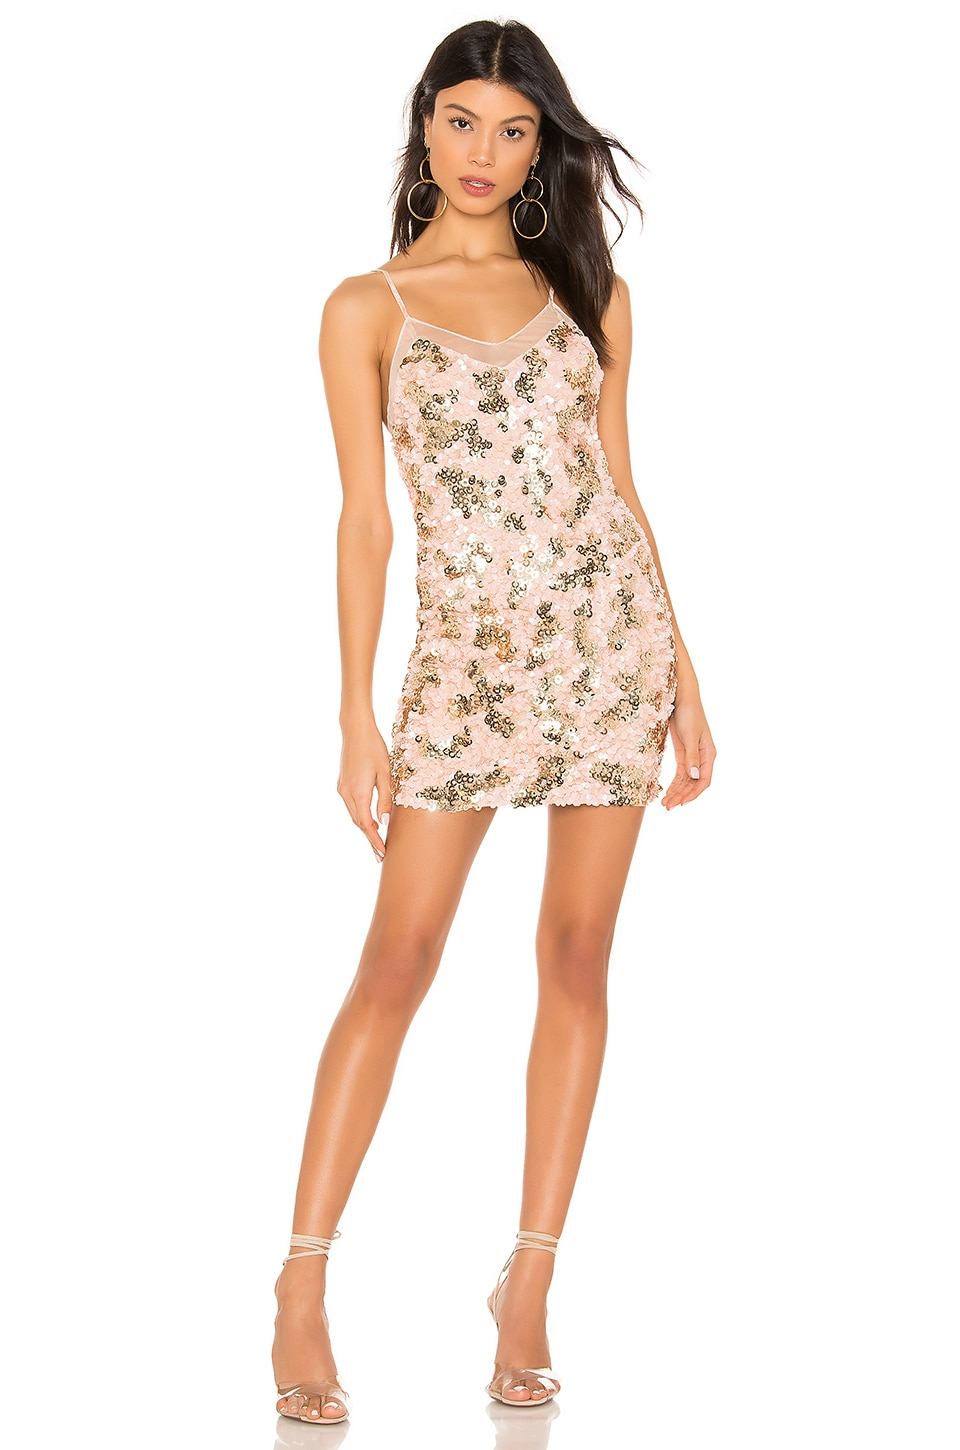 h:ours Nolita Mini Dress in Pink and Gold in Pink & Gold